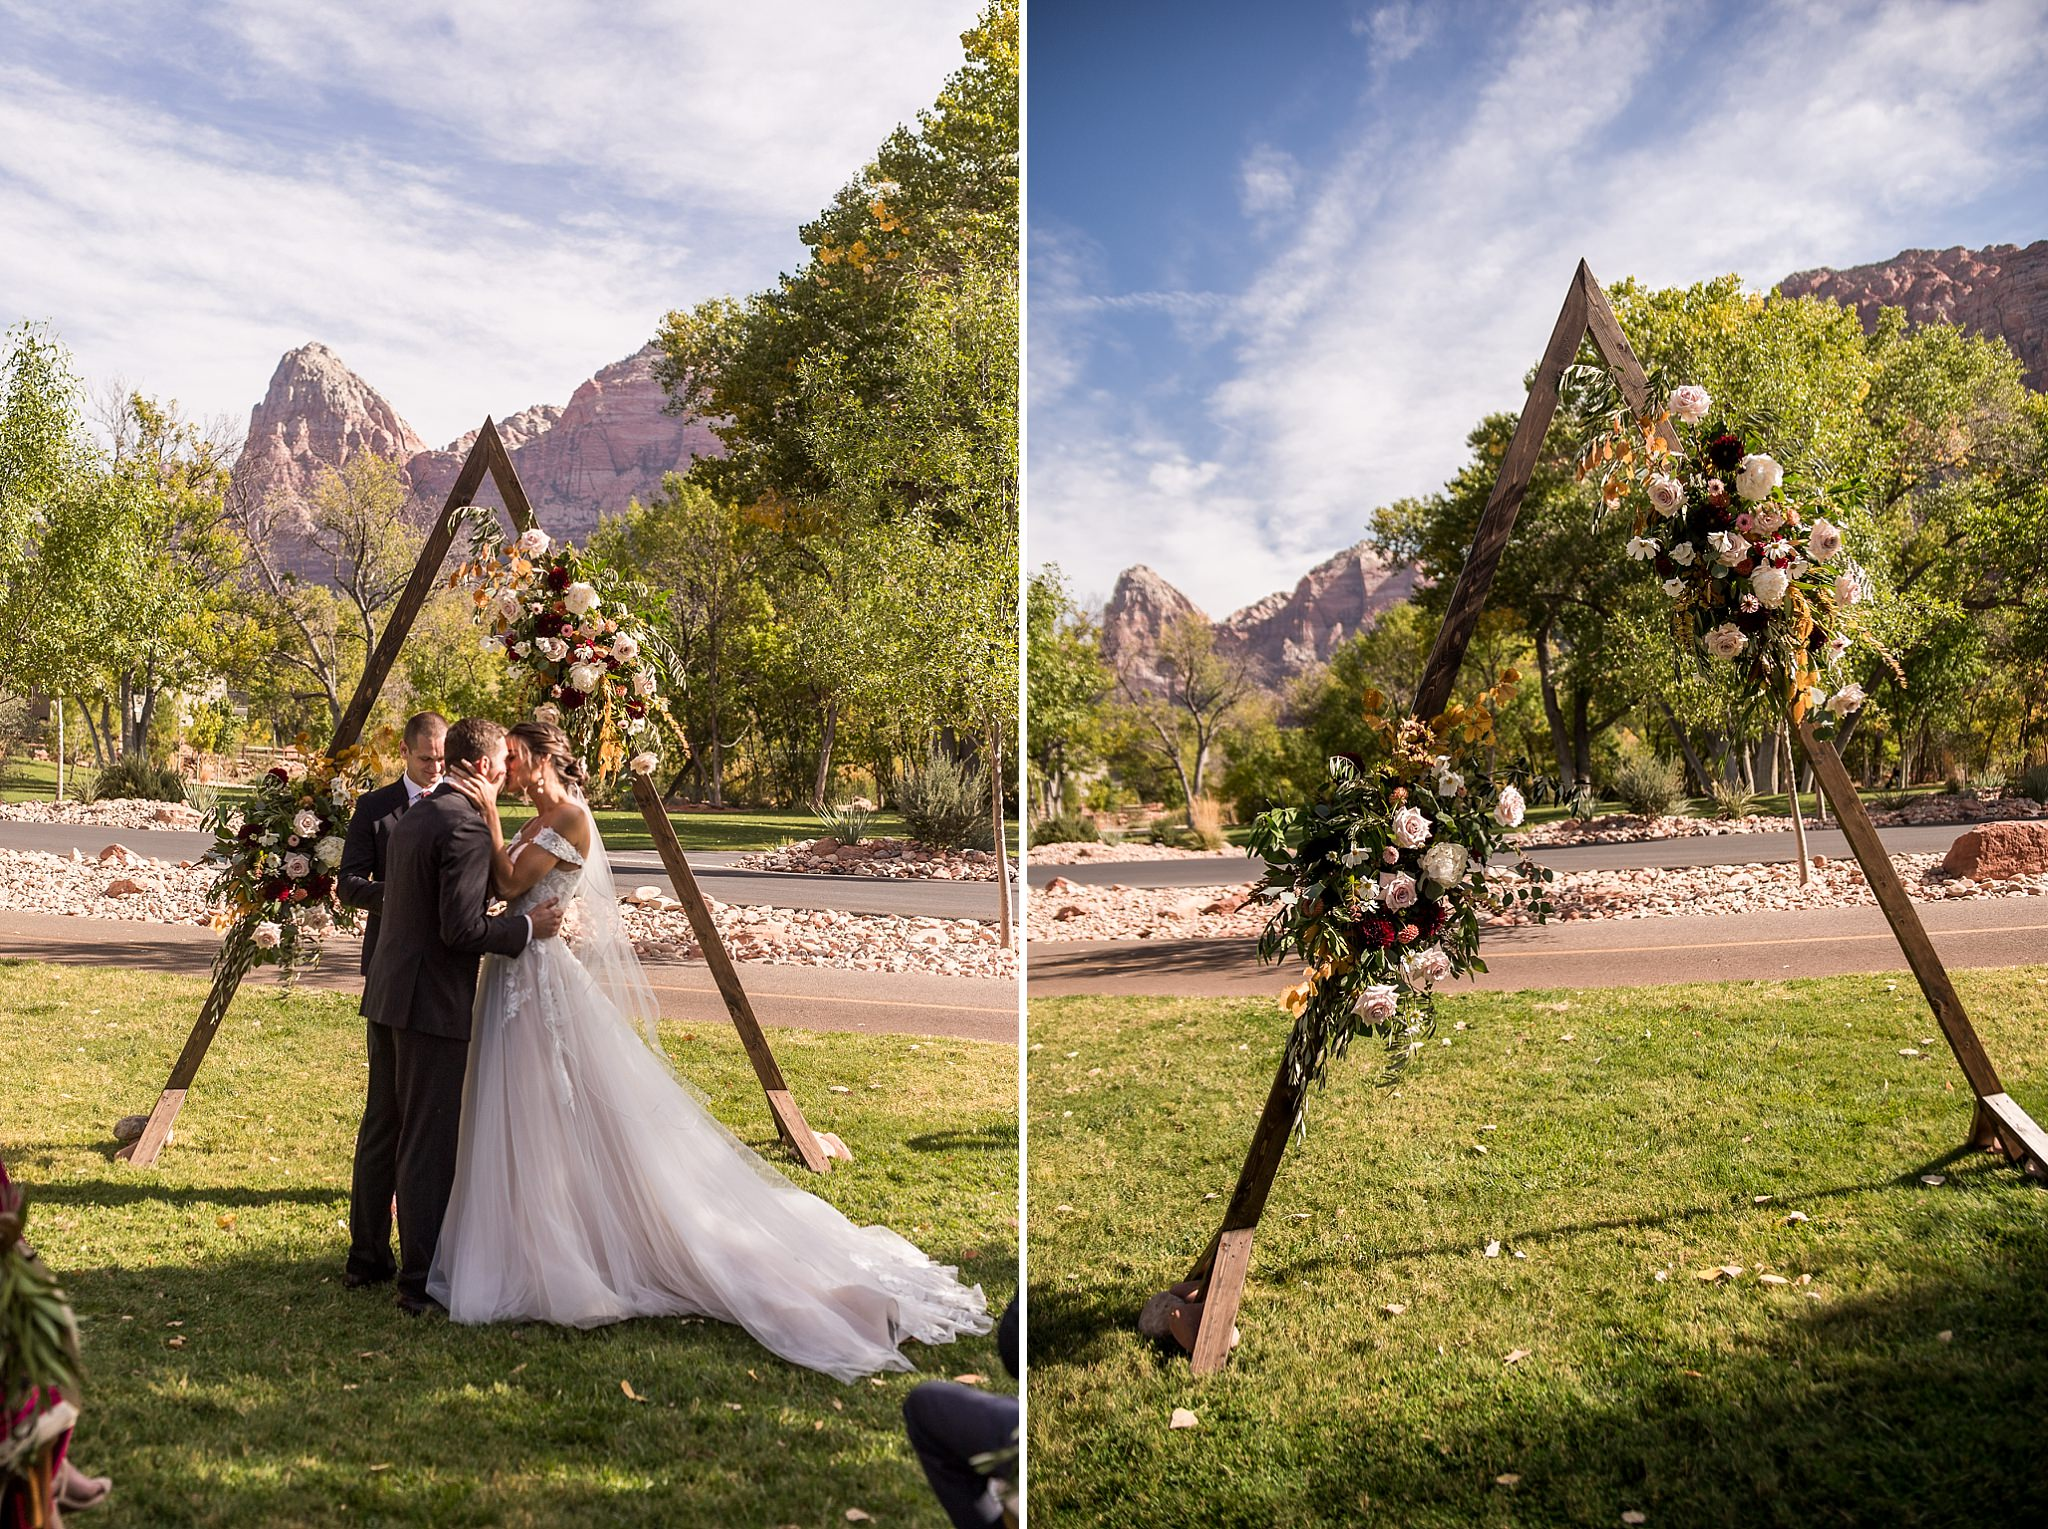 Wedding Ceremony at the Base of Zion National Park